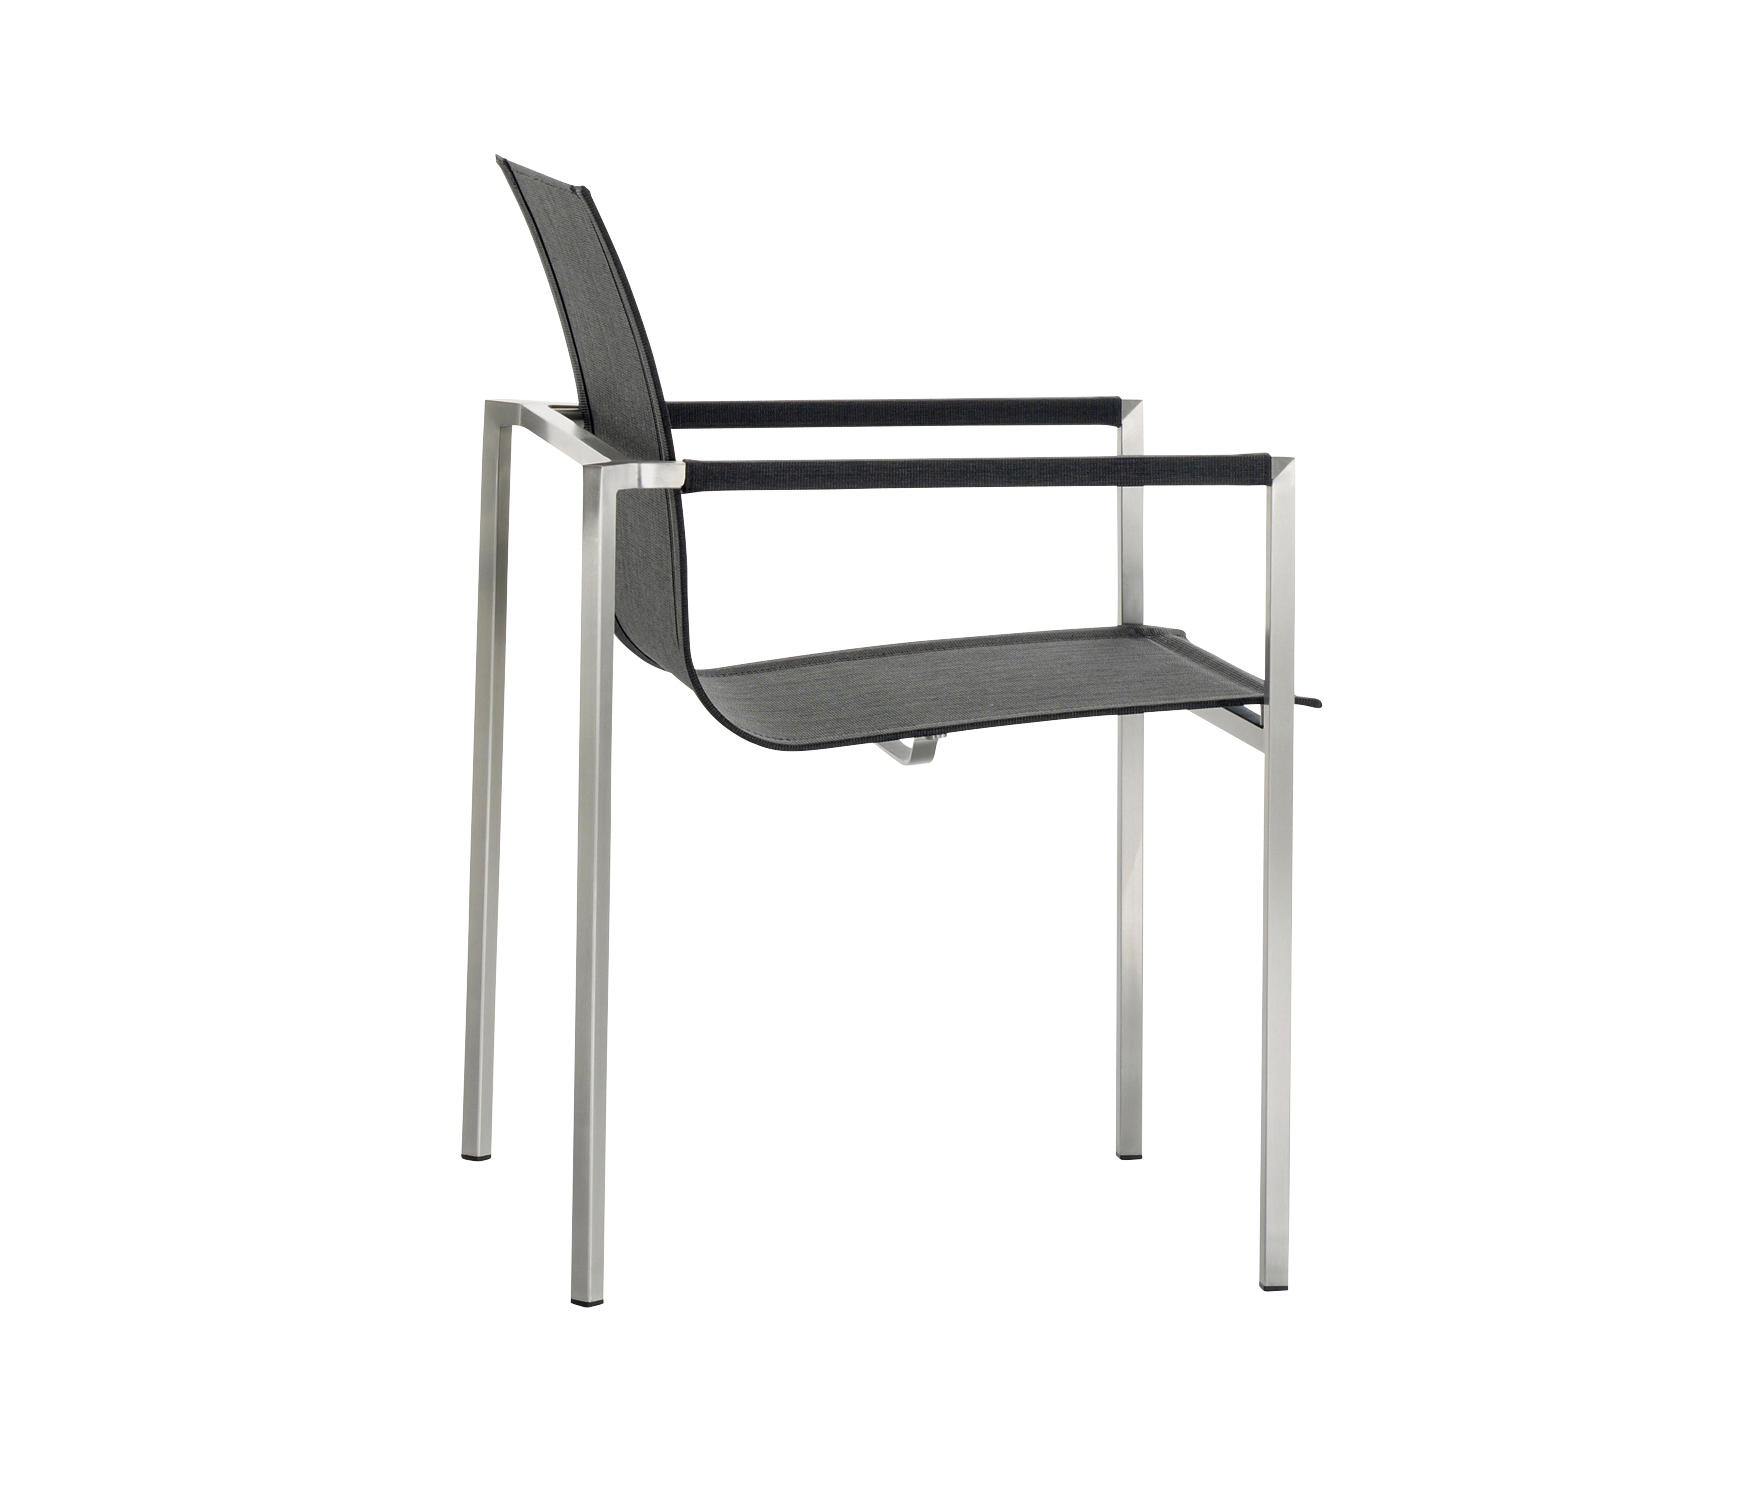 fauteuil empilable pure stainless steel de solpuri chaises - Fauteuil Stainless